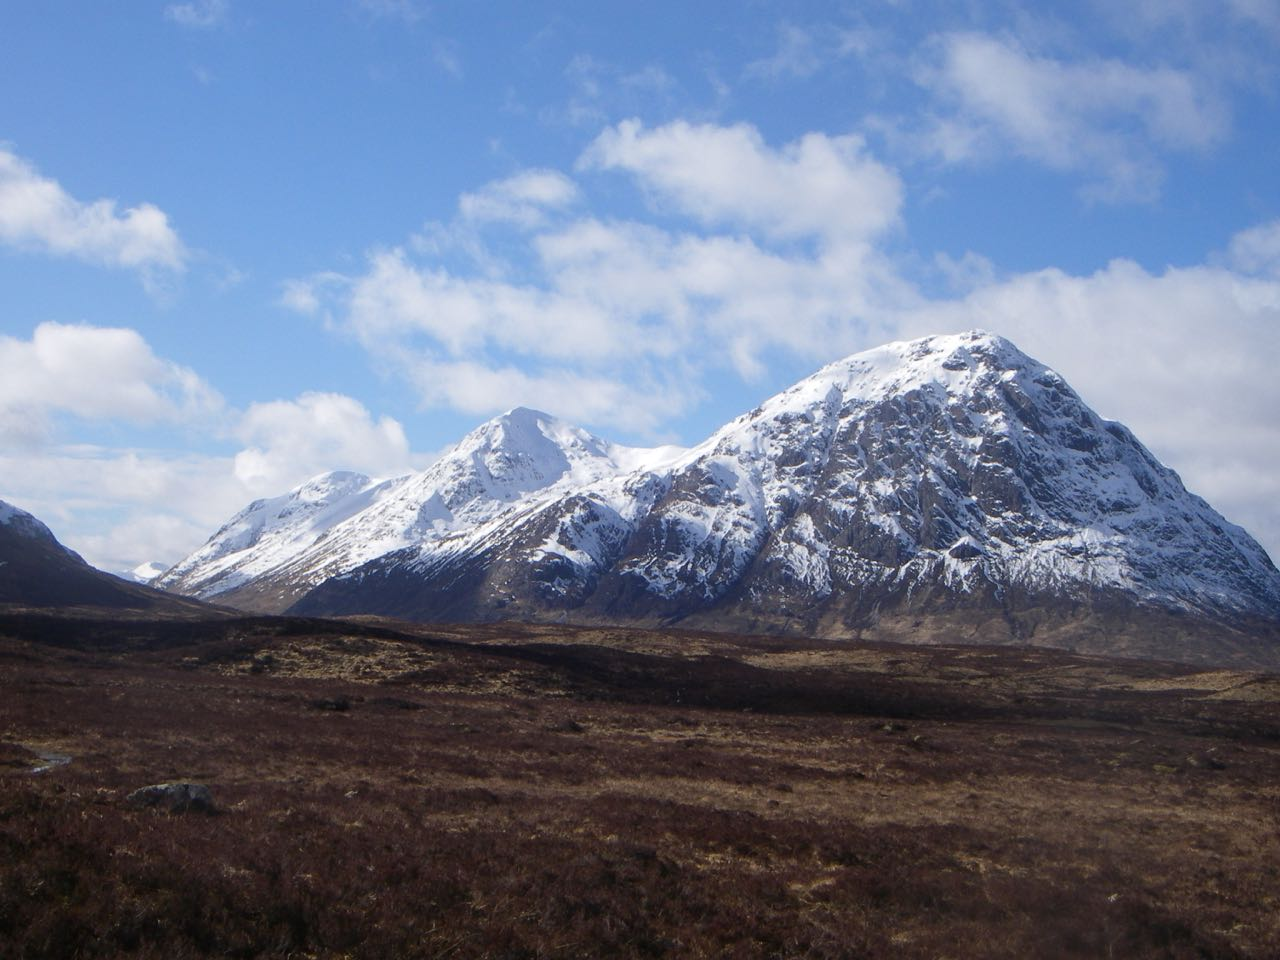 Looking the full length of the Buachaille Etive Mor ridge from Blackrock Cottage.